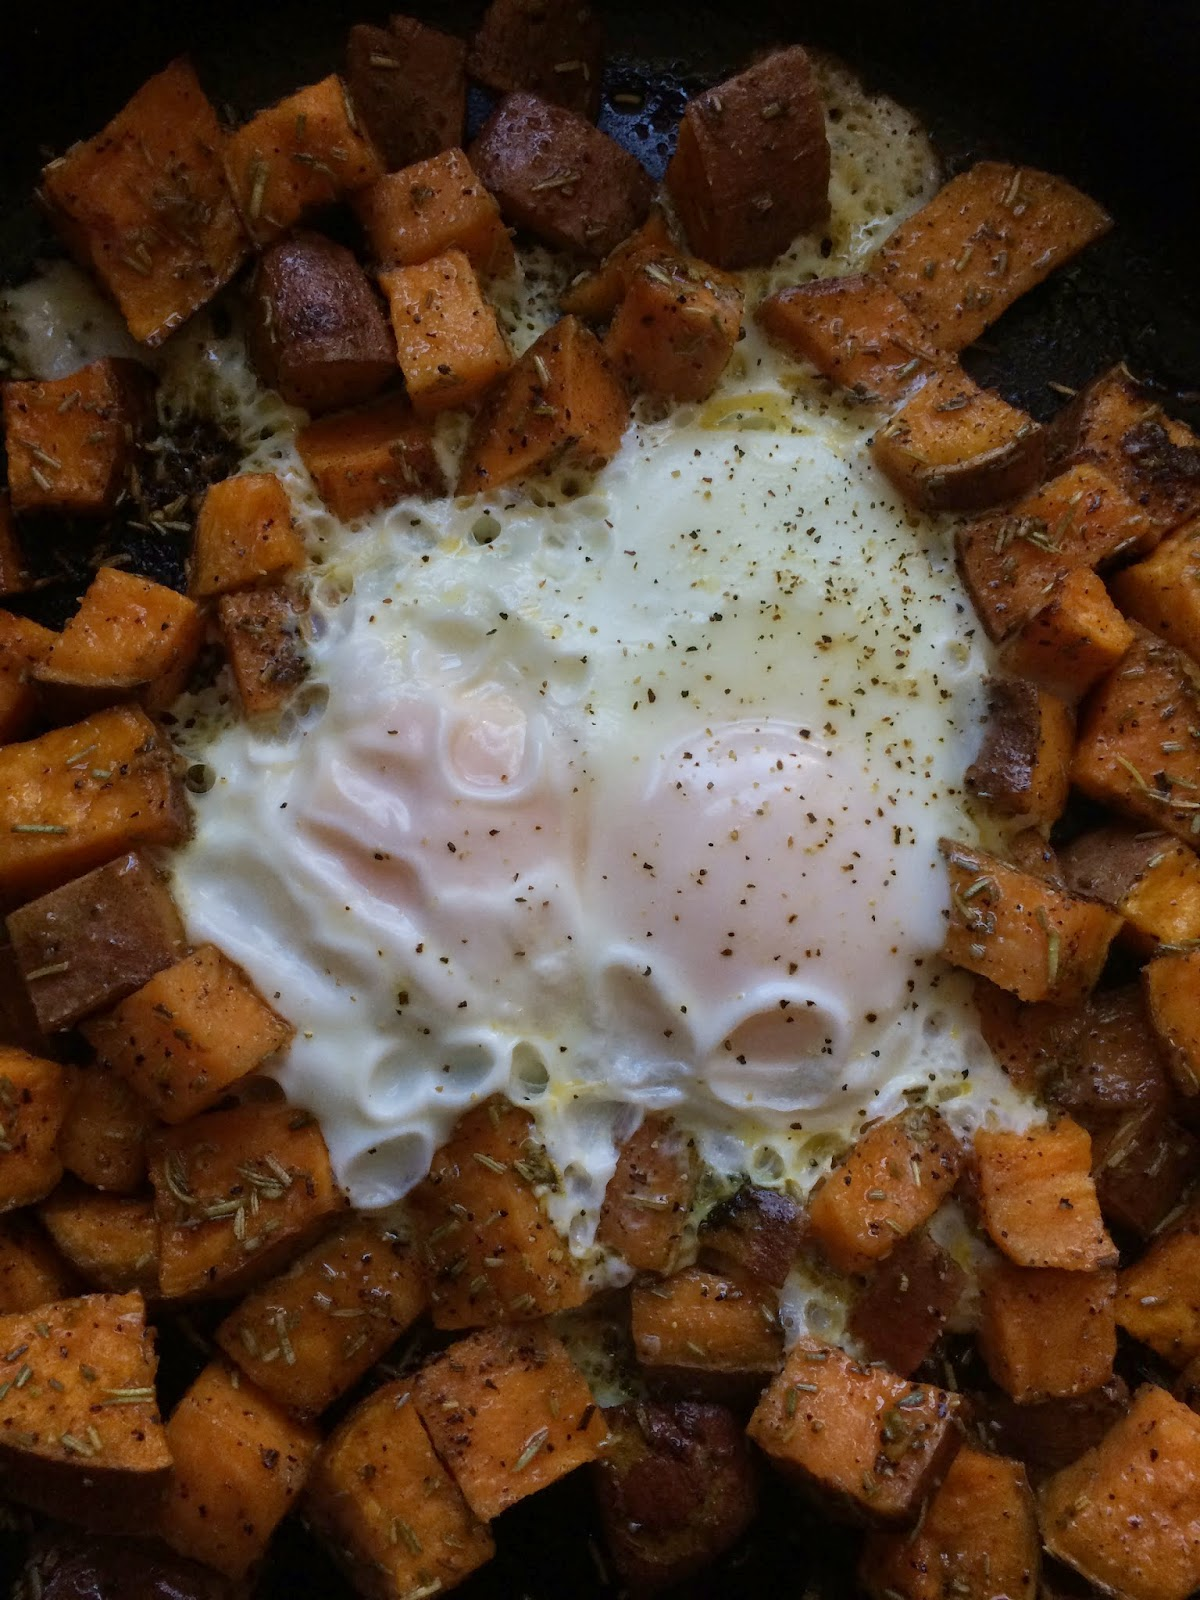 Two fried eggs nestled in a roasted rosemary sweet potato nest - so ...